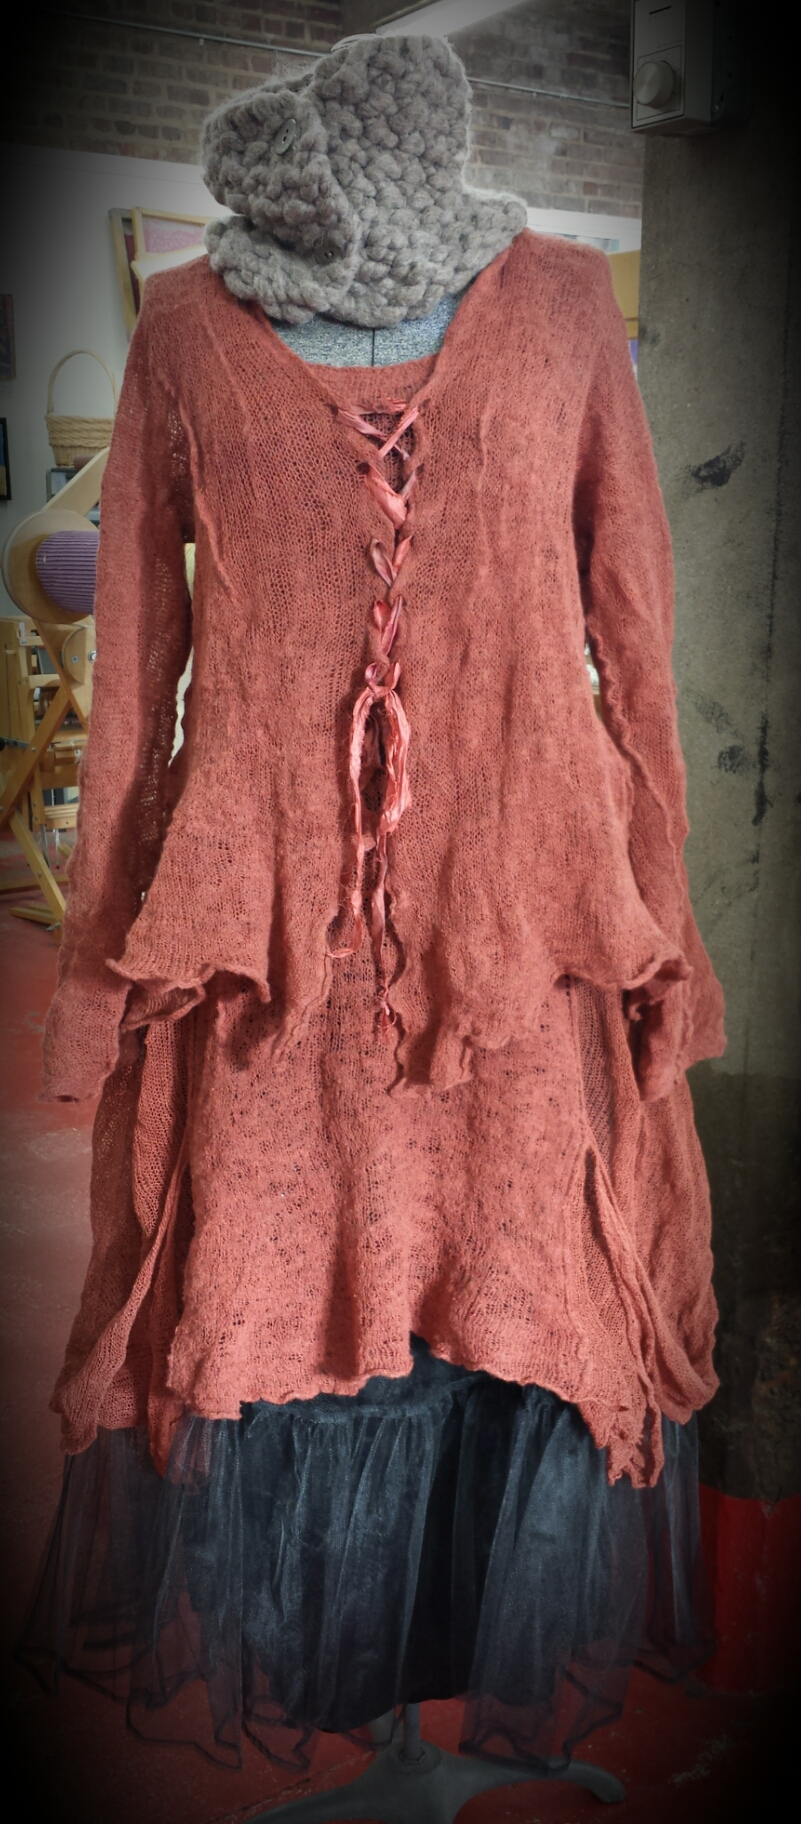 Cayenne corset cardi layered over one off Gatsby dress.